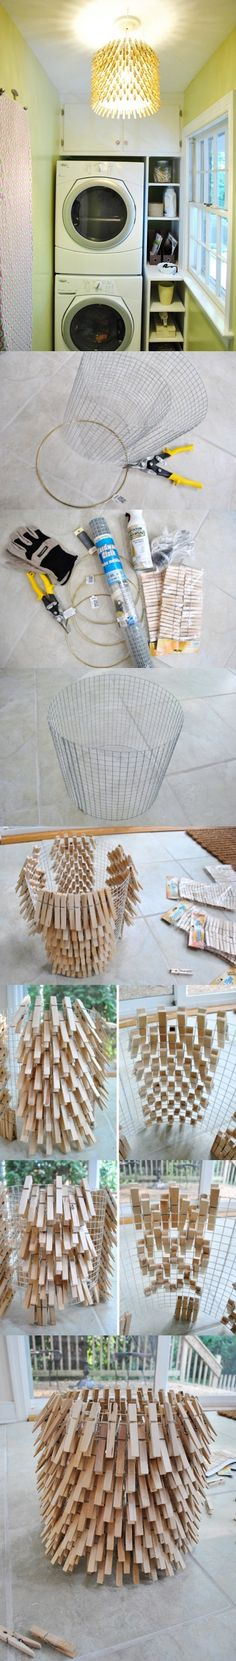 Making a Chandelier from Clothespins #recyclecrafts